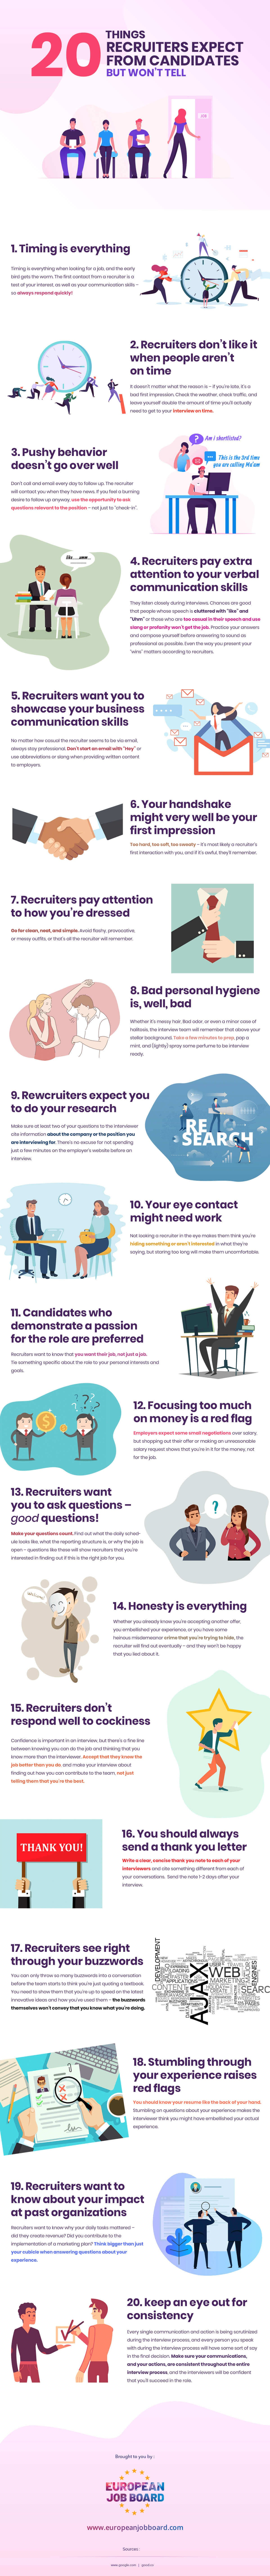 20 Things Recruiters Expect from Candidates But Who not Tell #infographic